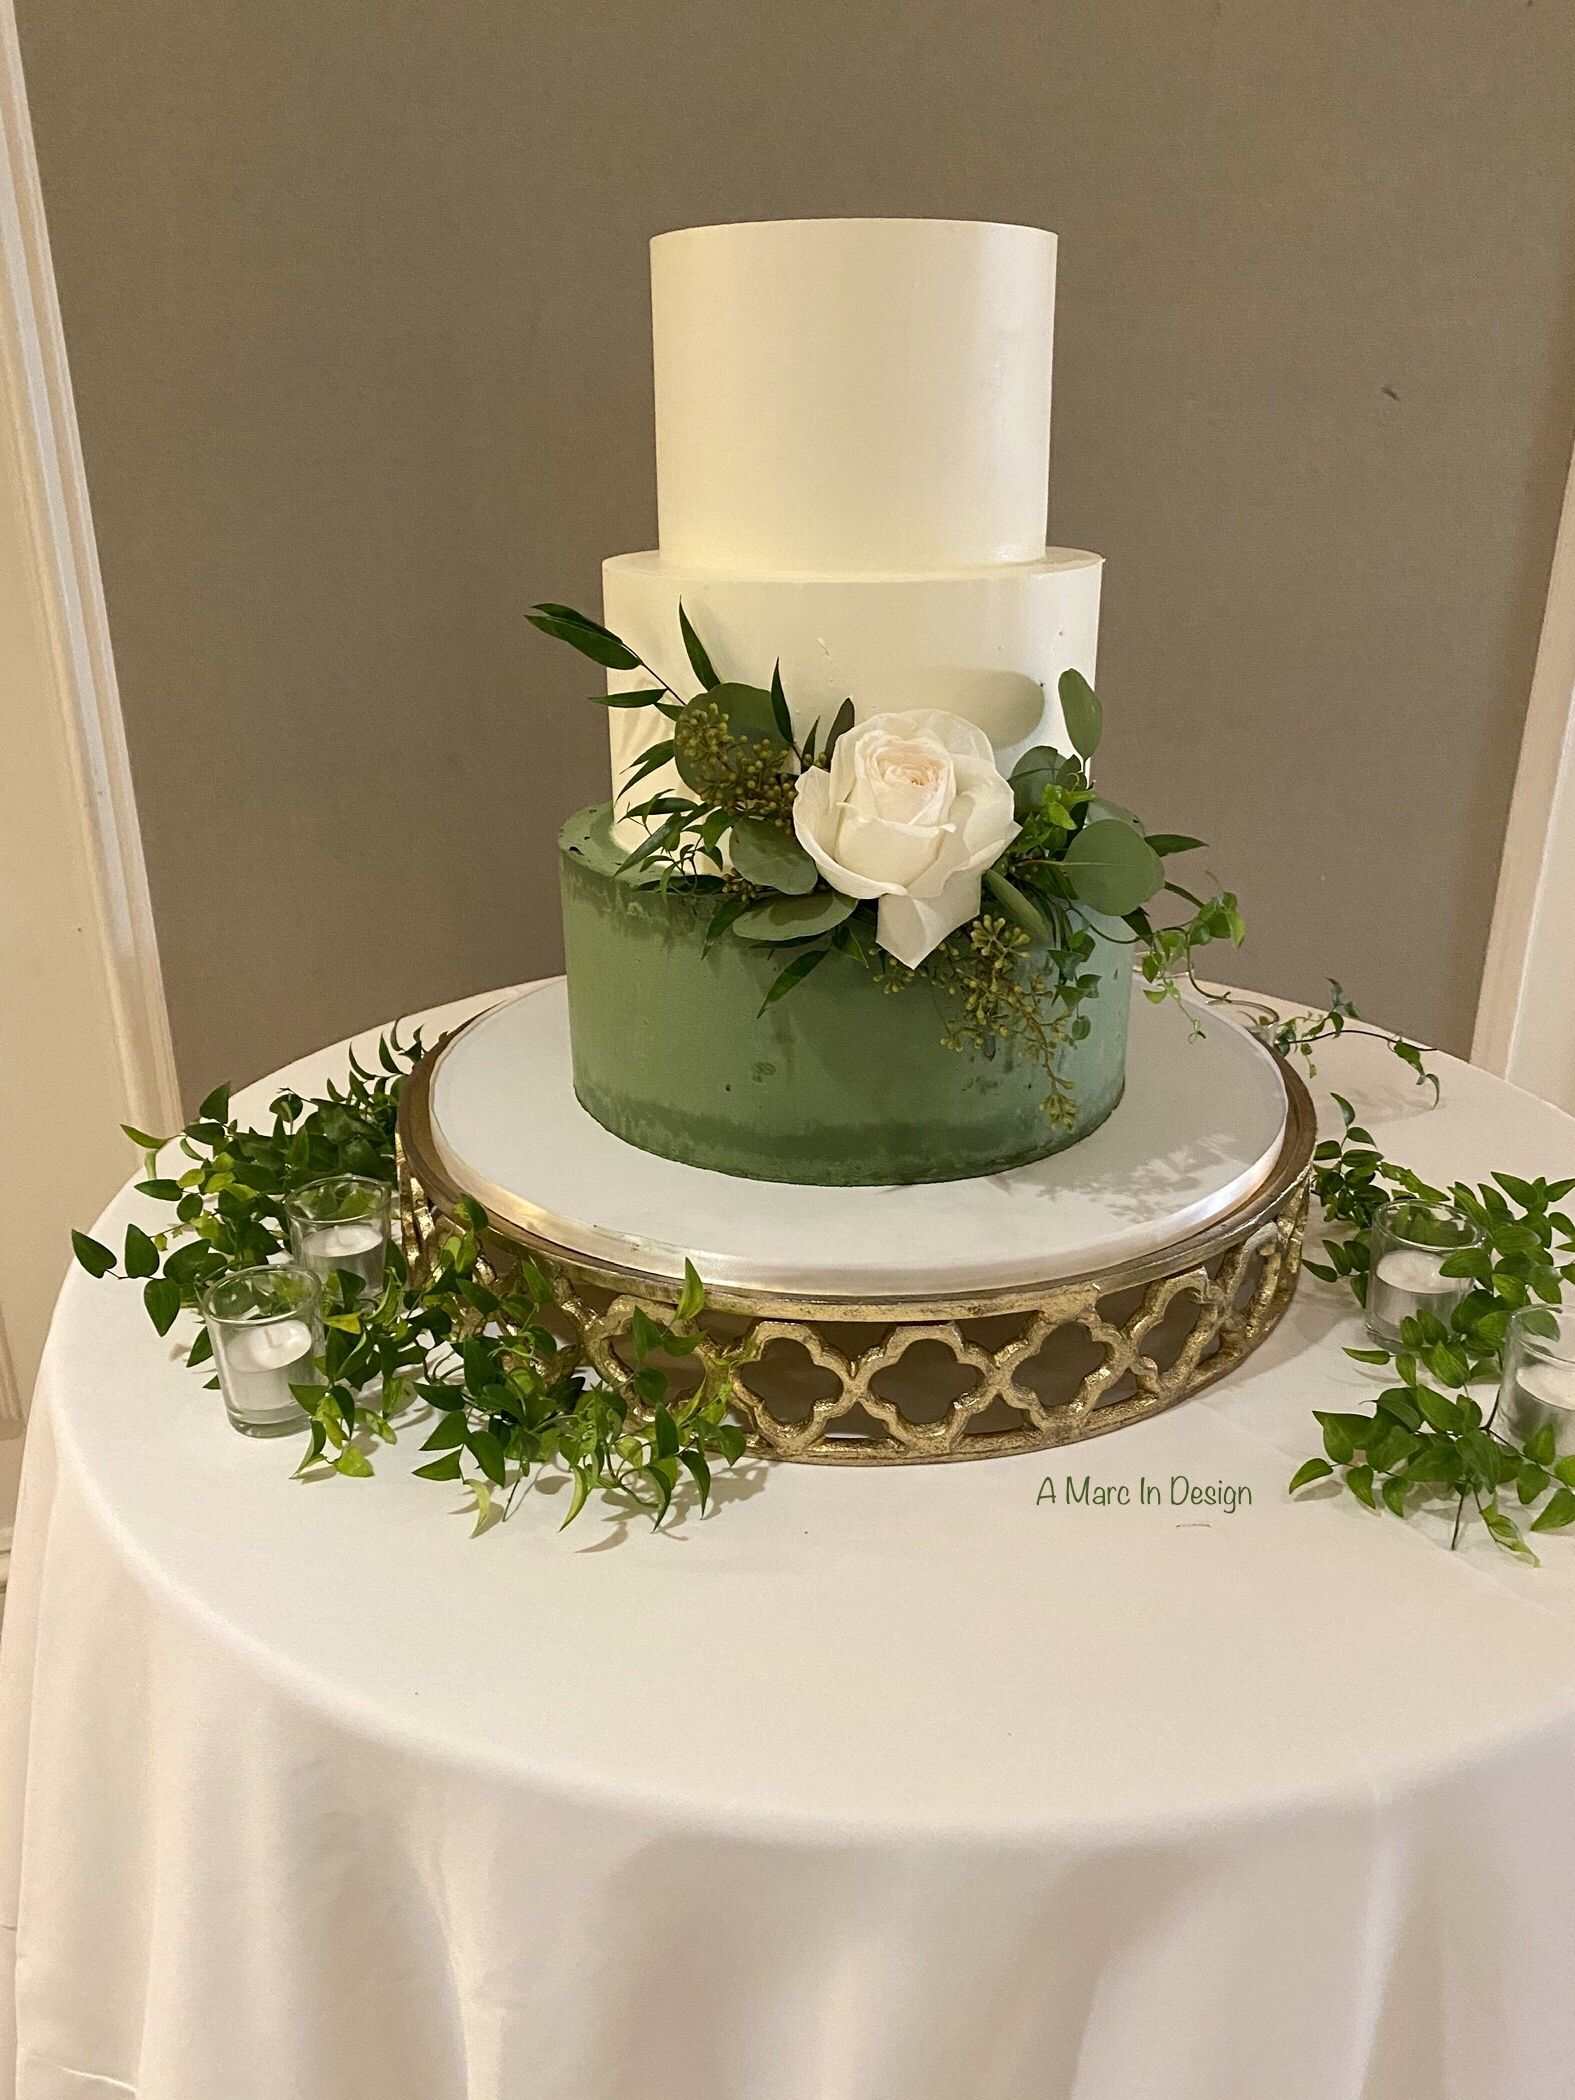 Fragrant eucalyptus and white rose adorn this cake in 2020